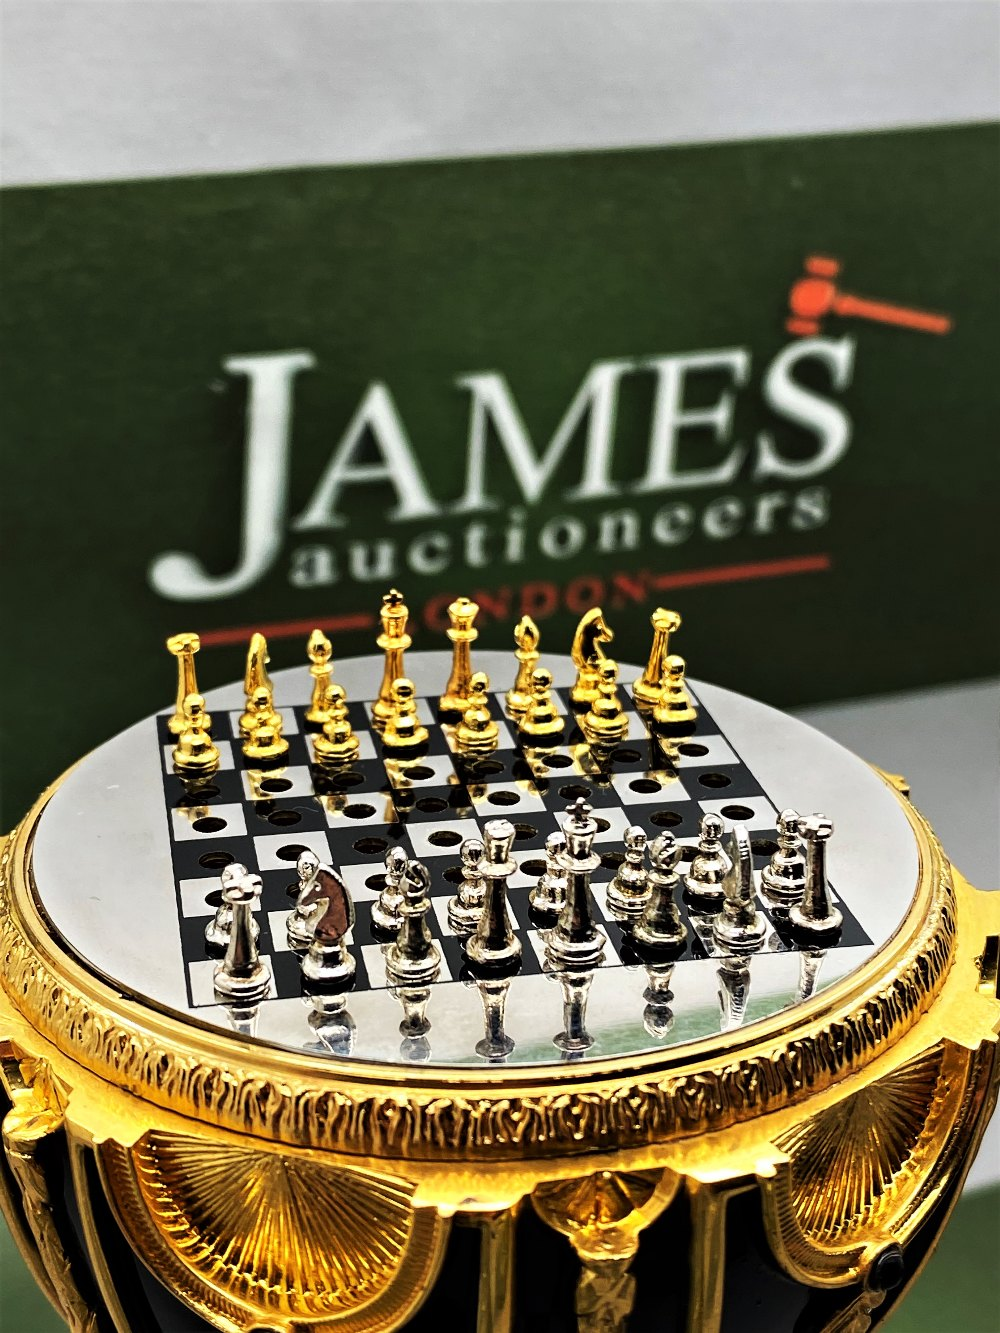 Franklin Mint House of Faberge 24 Carat Gold Imperial Jeweled Egg Chess Set - Image 7 of 11